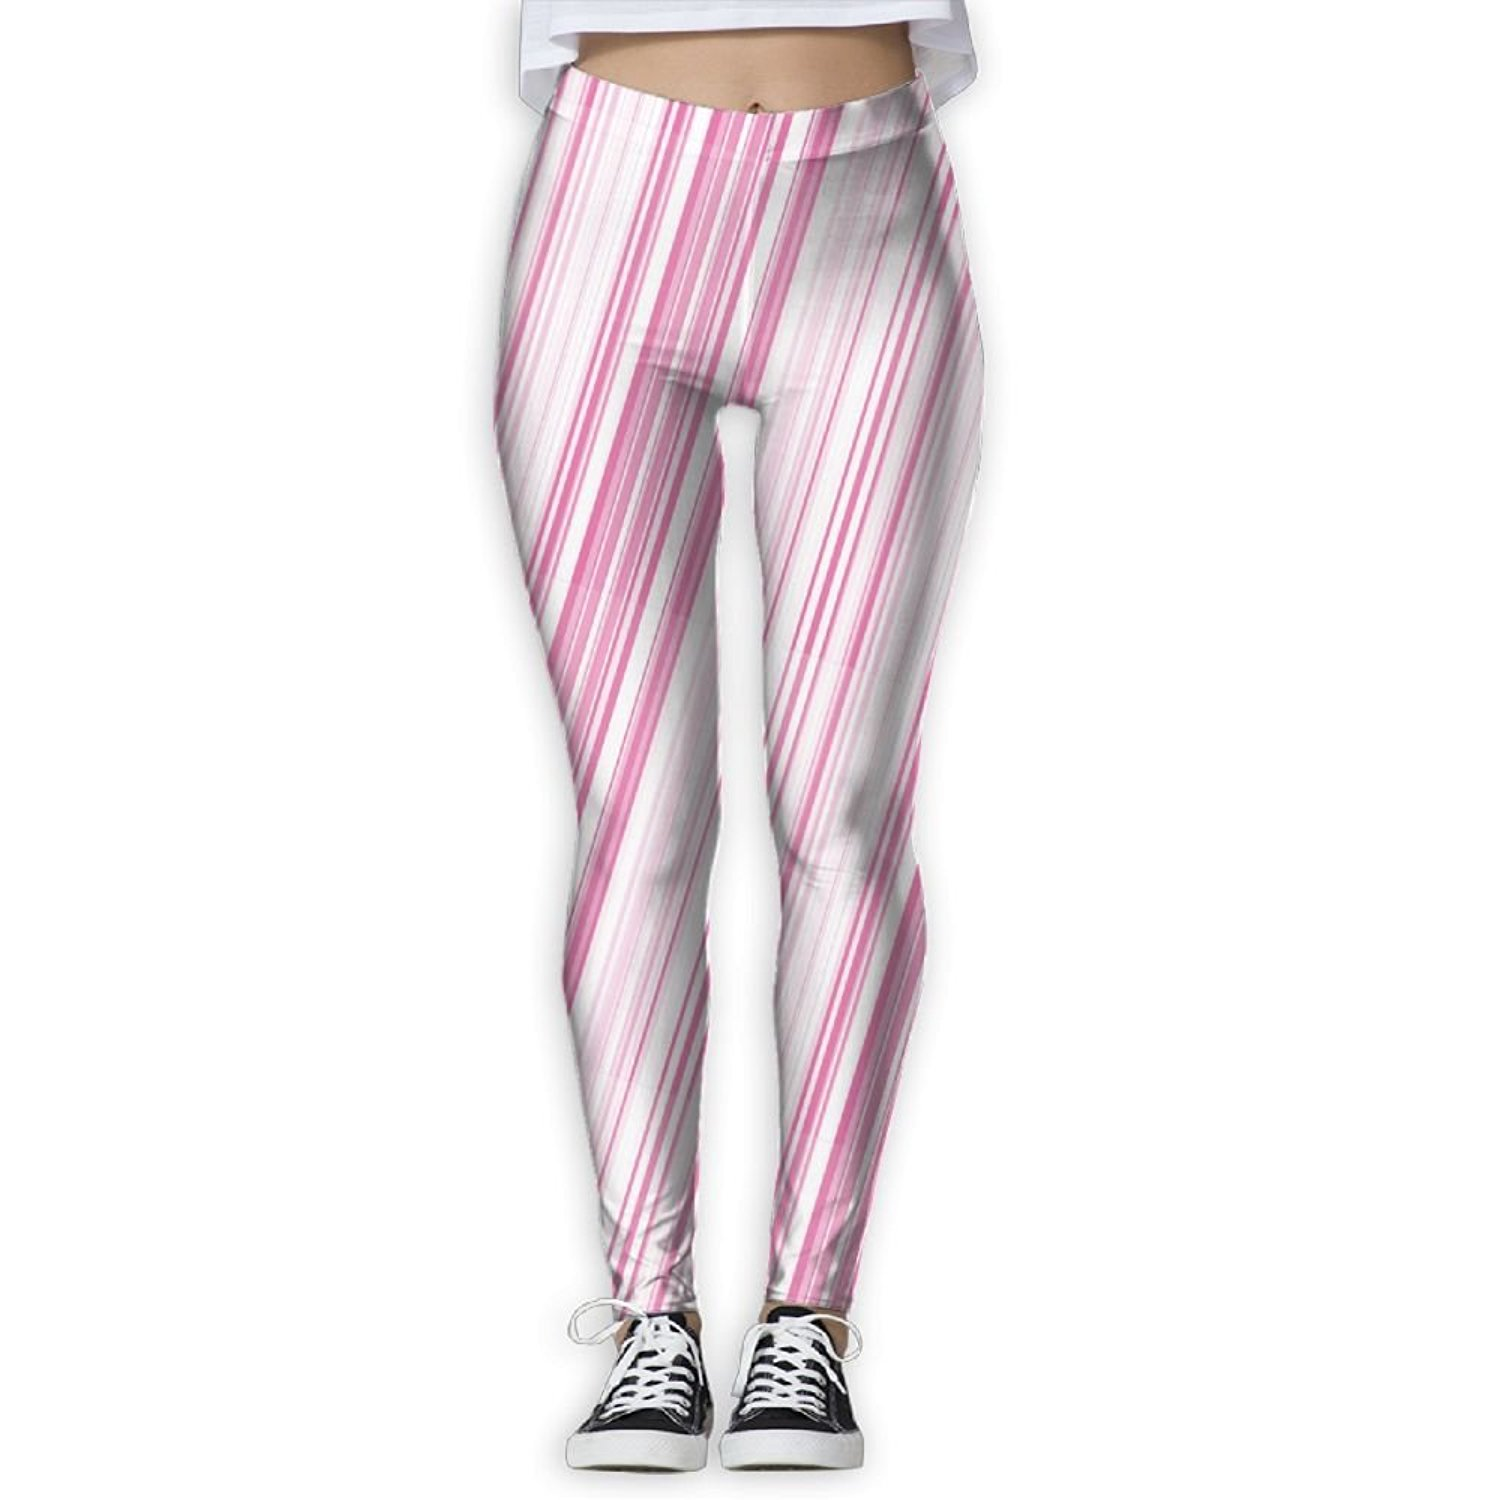 34874431a886a Get Quotations · Wall369sd Womens Vertical Striped Abstract Color Bands  Straight Lines Geometric Artistic Women's Tight Pants Women's Sports